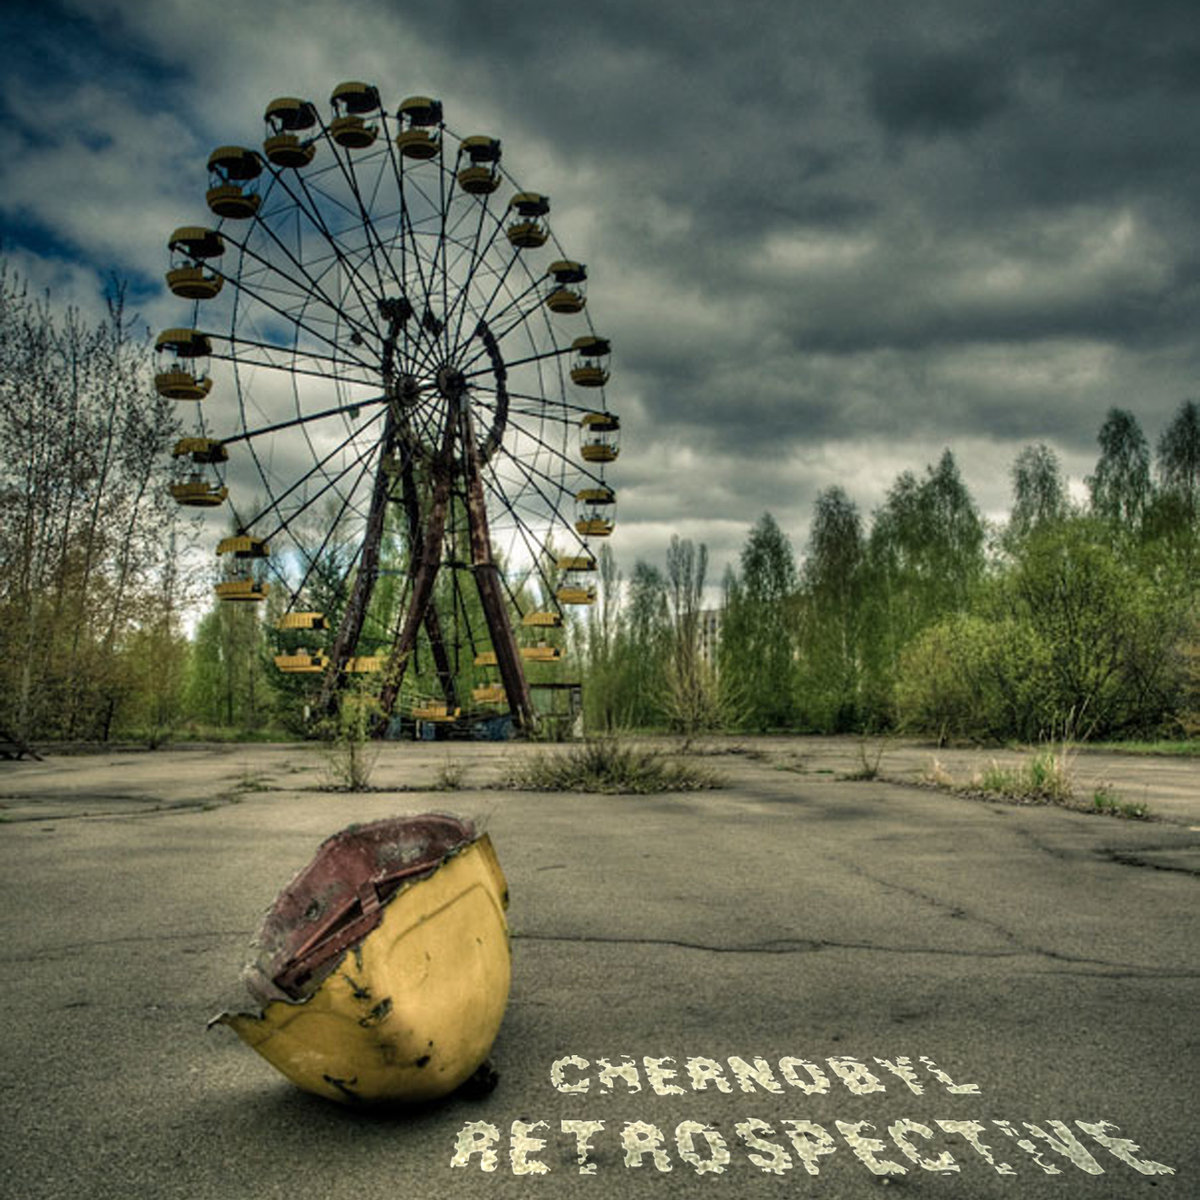 Eugene Kush - Yellow @ 'Various Artists - Chernobyl Retrospective' album (electronic, ambient)